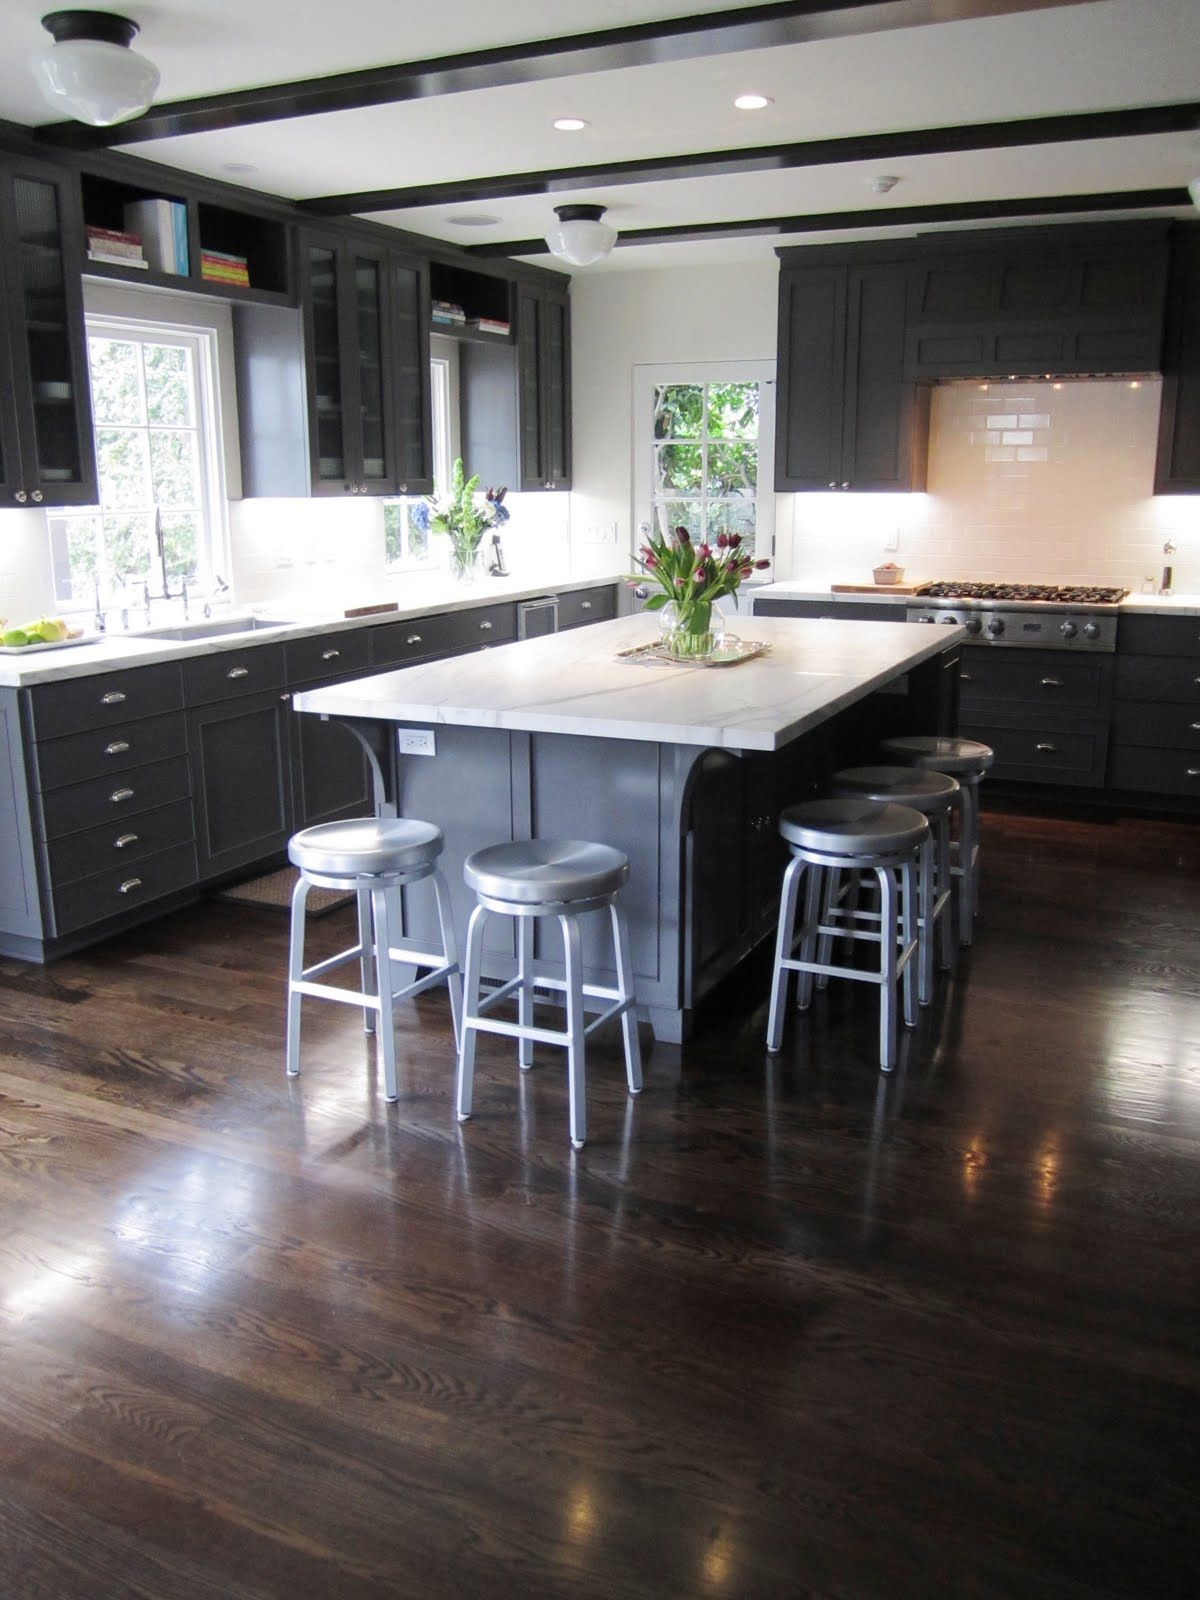 Gray Kitchen Floors Thin Celing Beams In Kitchen Cococozy Cococozy Exclusive